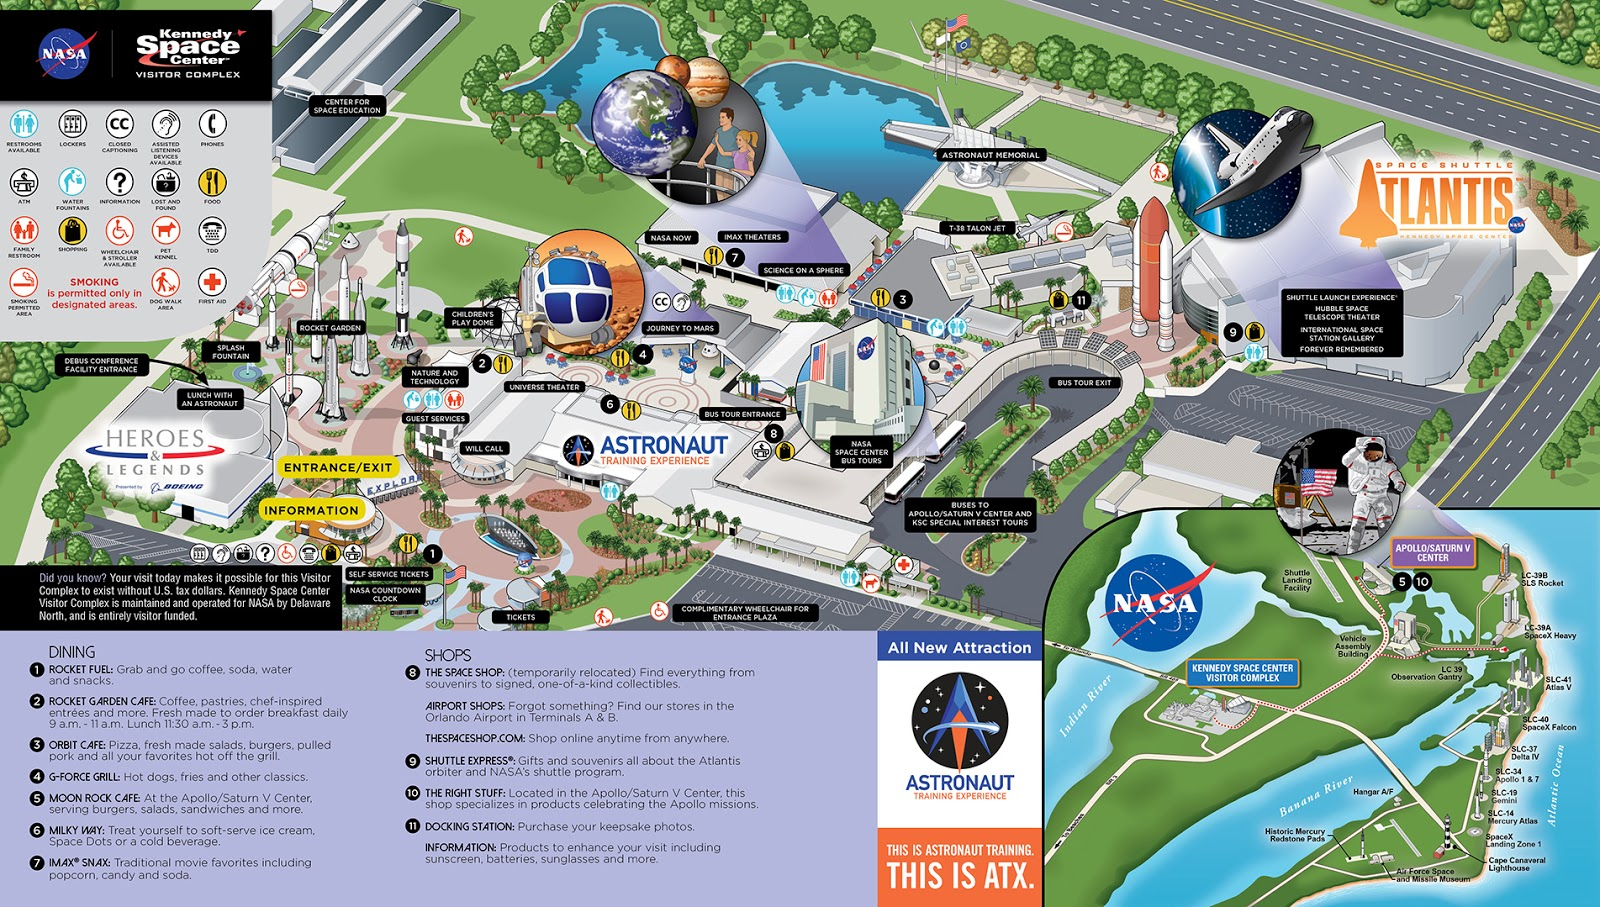 Kennedy Space Center, Cabo Canaveral, Florida